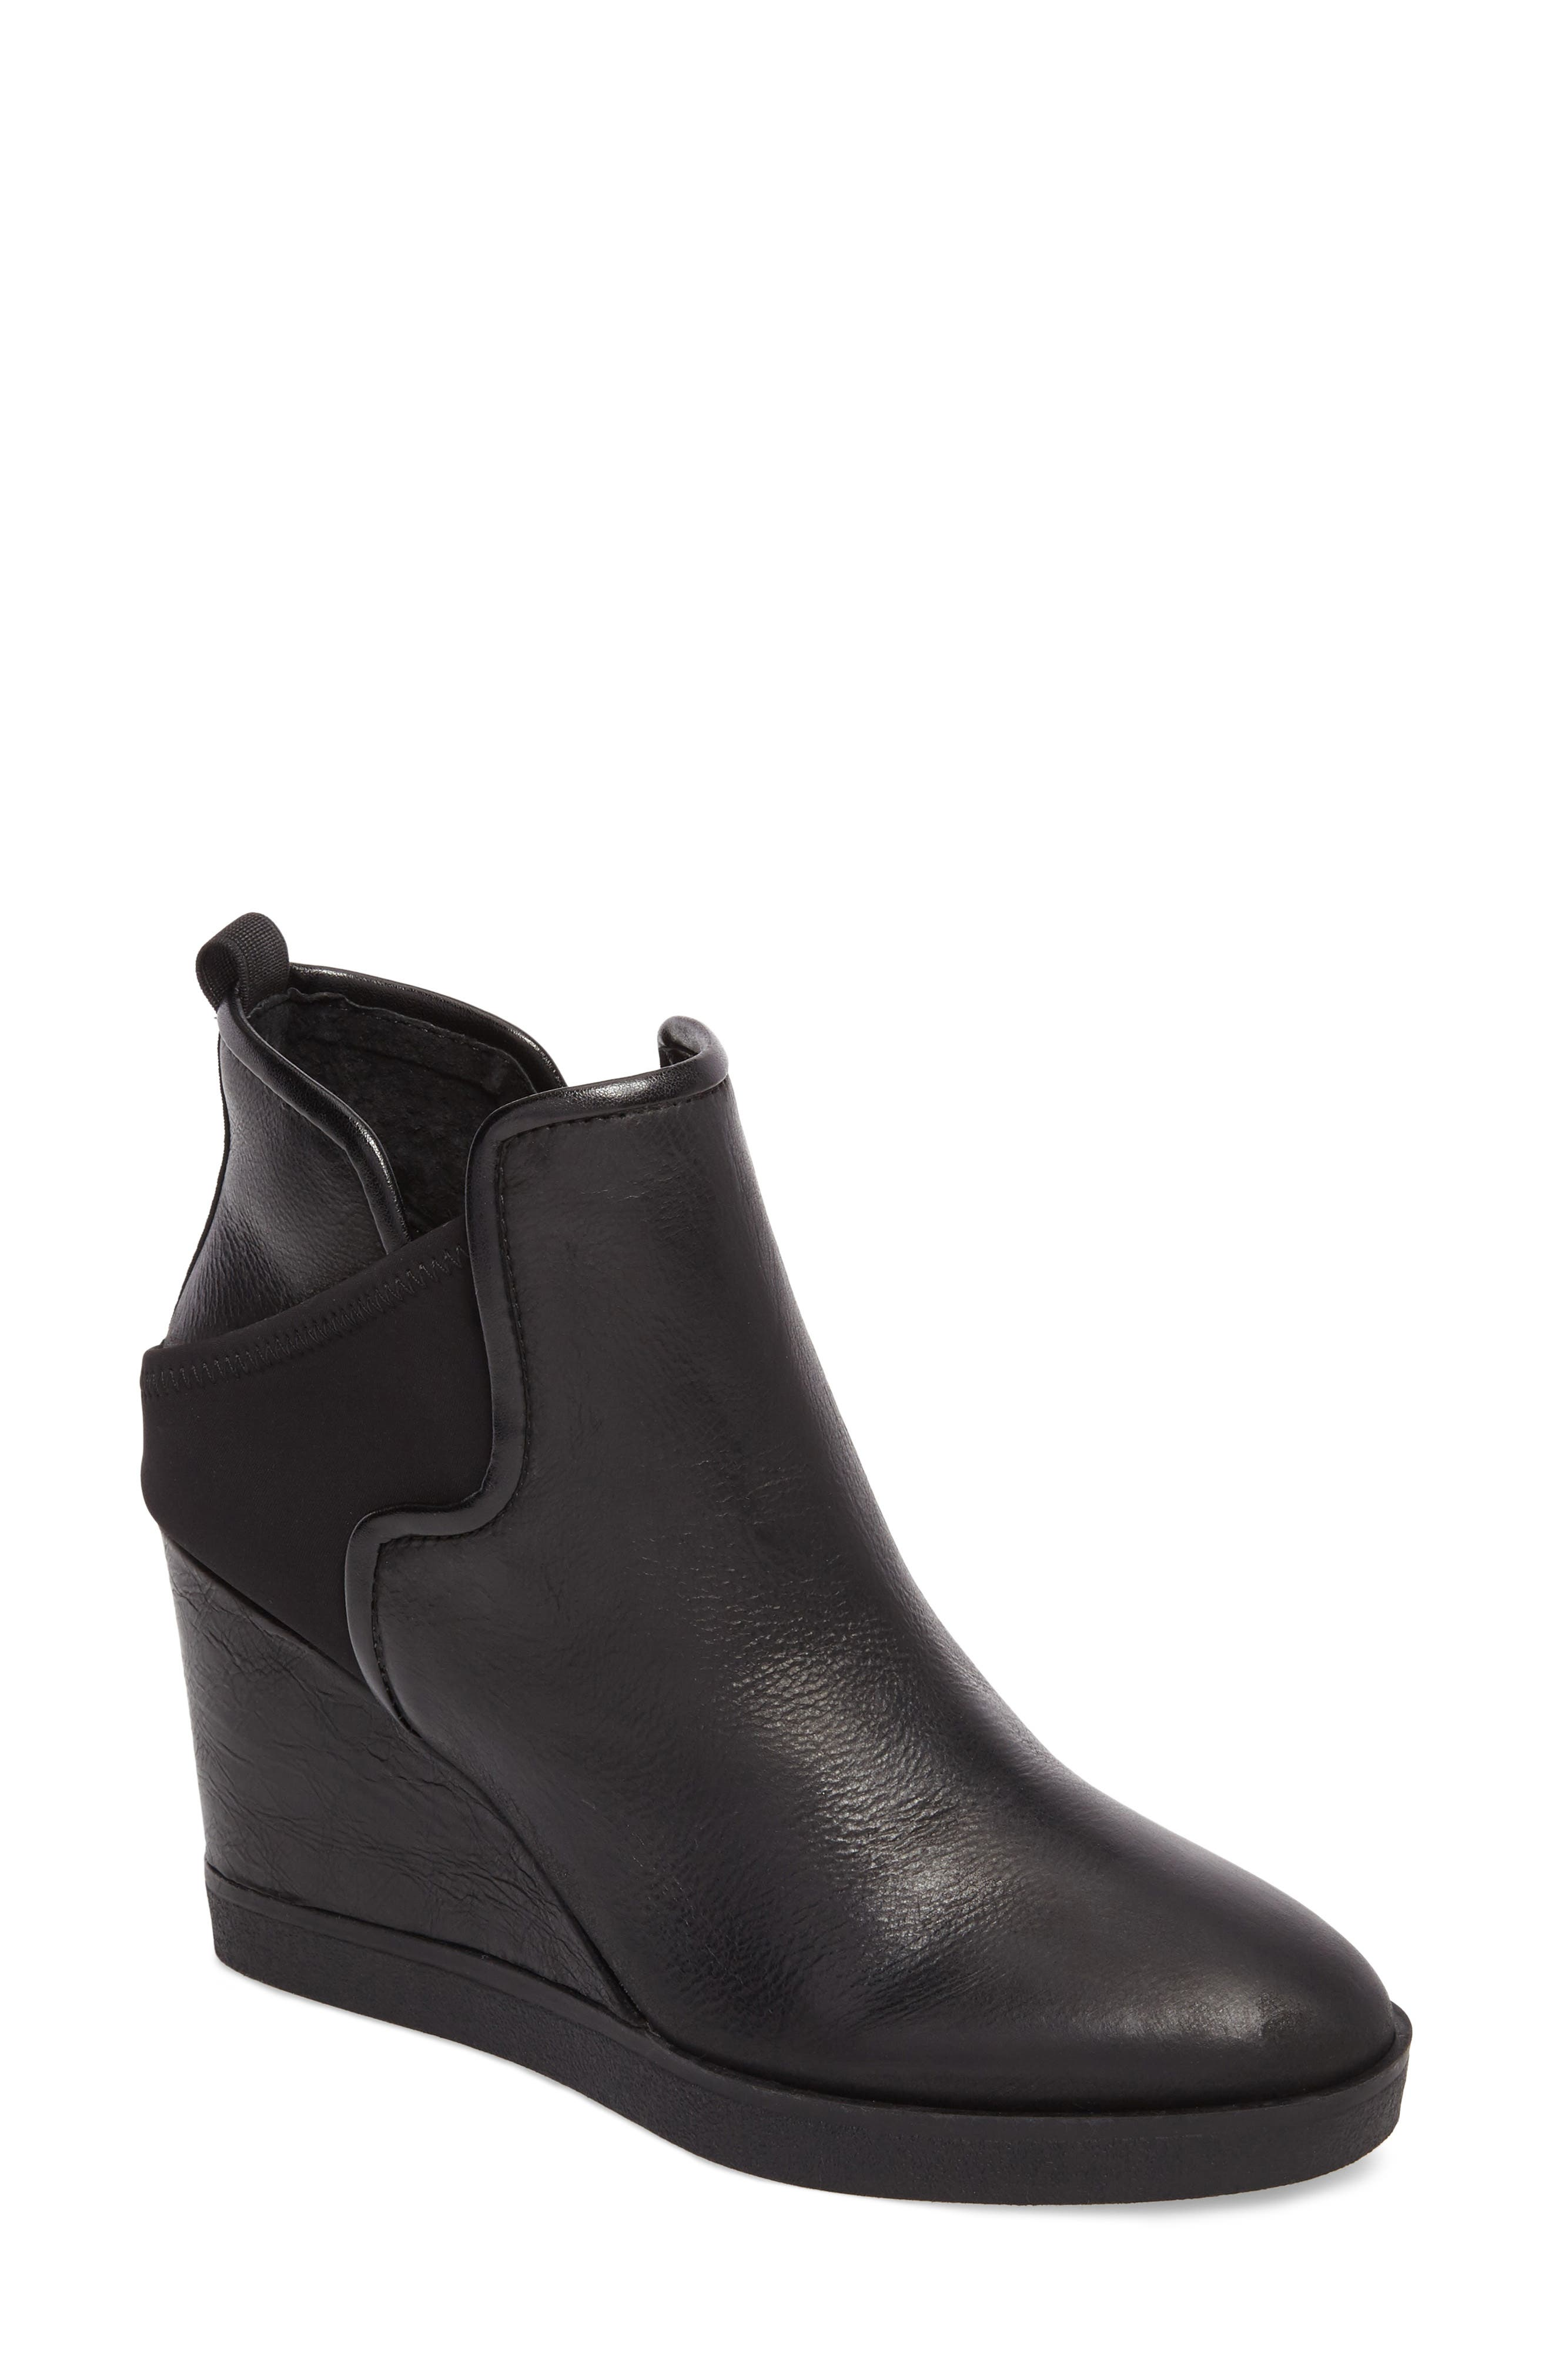 Lulu Wedge Bootie,                             Main thumbnail 1, color,                             001